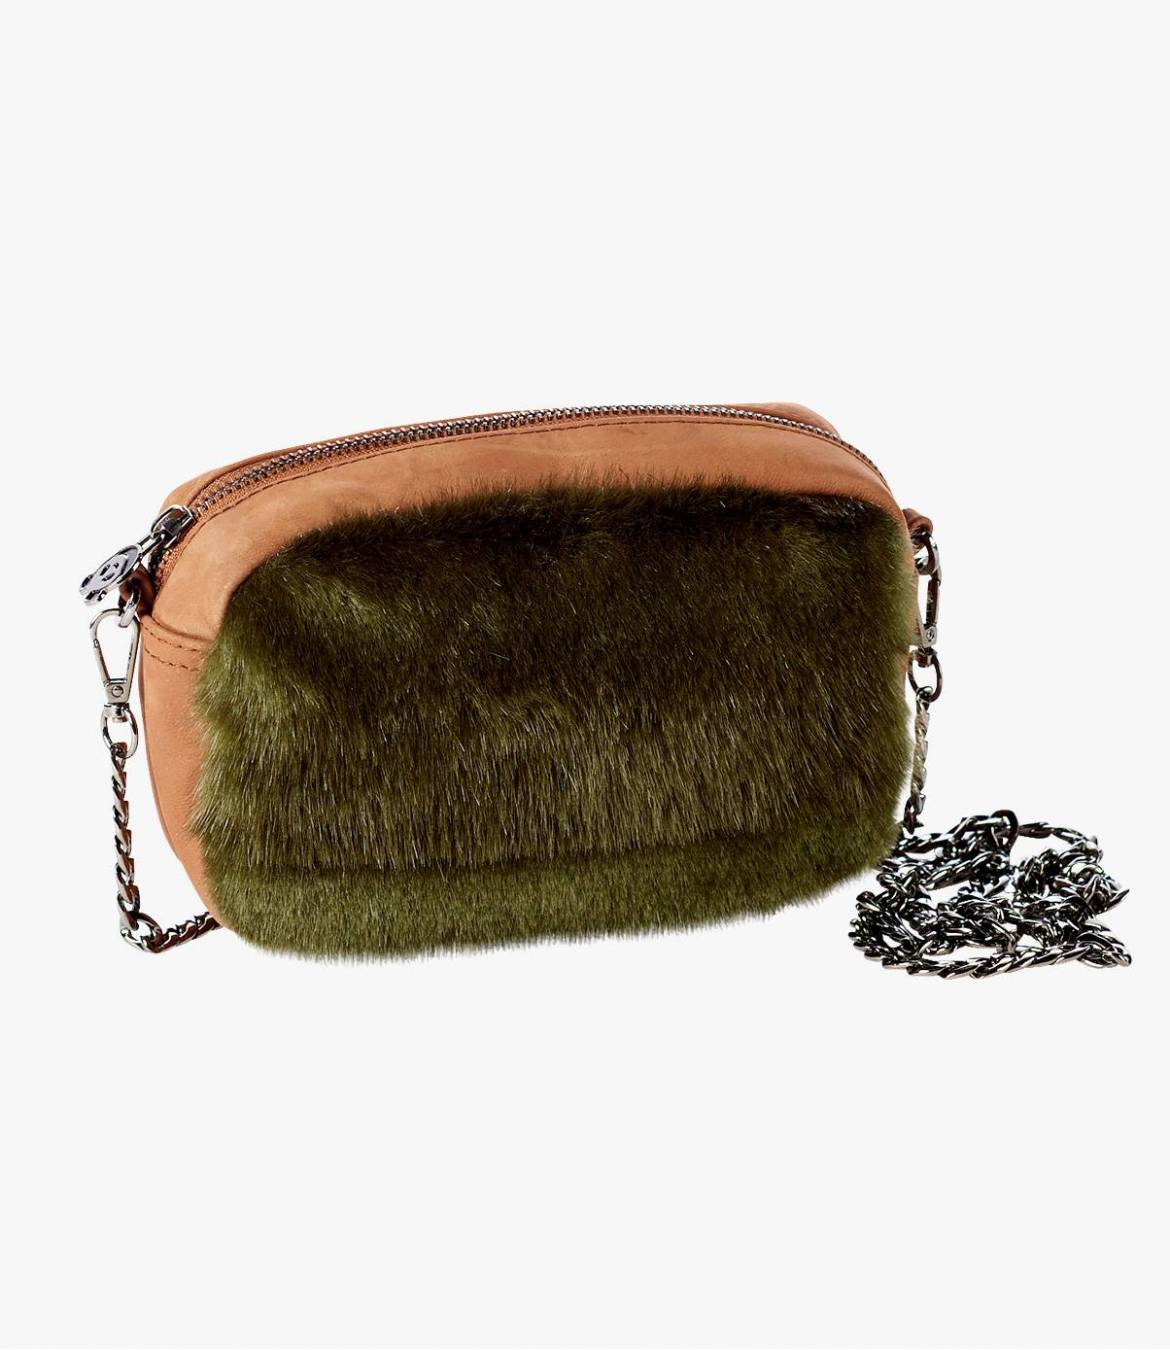 NIGHT SUEDE Suede Pouch, Acrylic, Cotton for Women 18x12x5 cm Storiatipic - 1